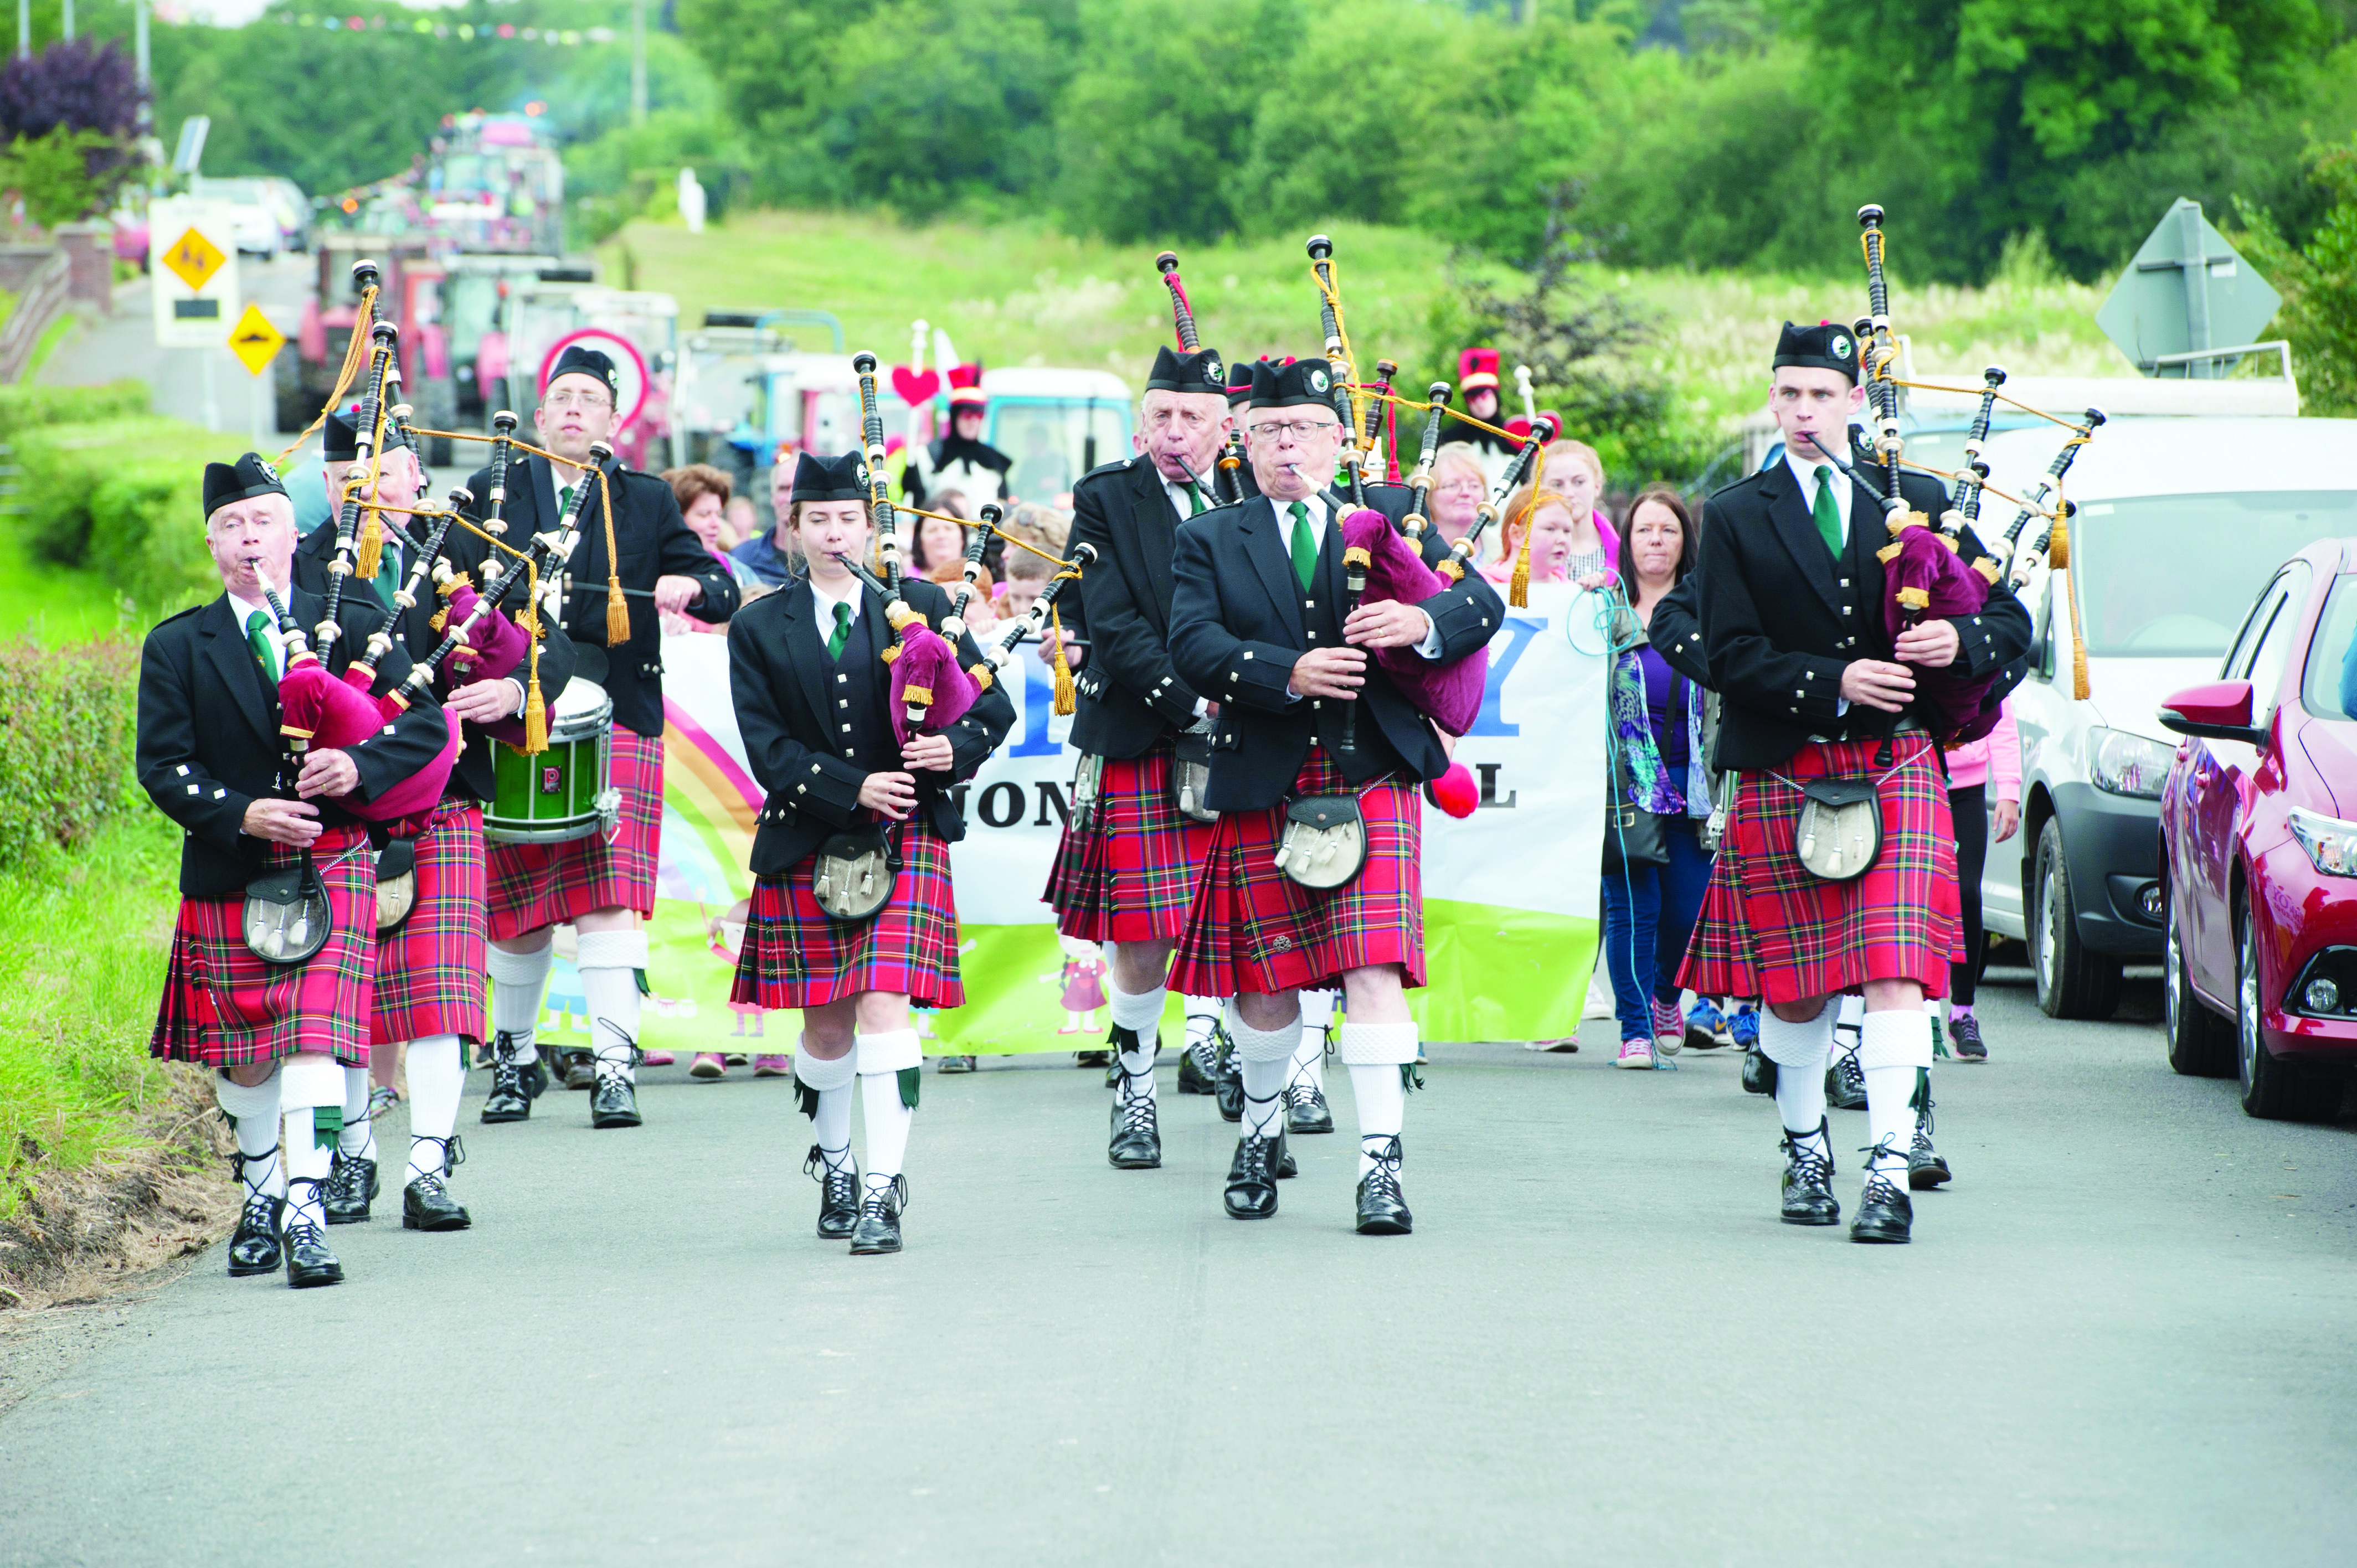 The Brantry Pipe Band leading the parade at the start of the Carrickroe Welcome Home Festival sports day. ©Rory Geary/The Northern Standard